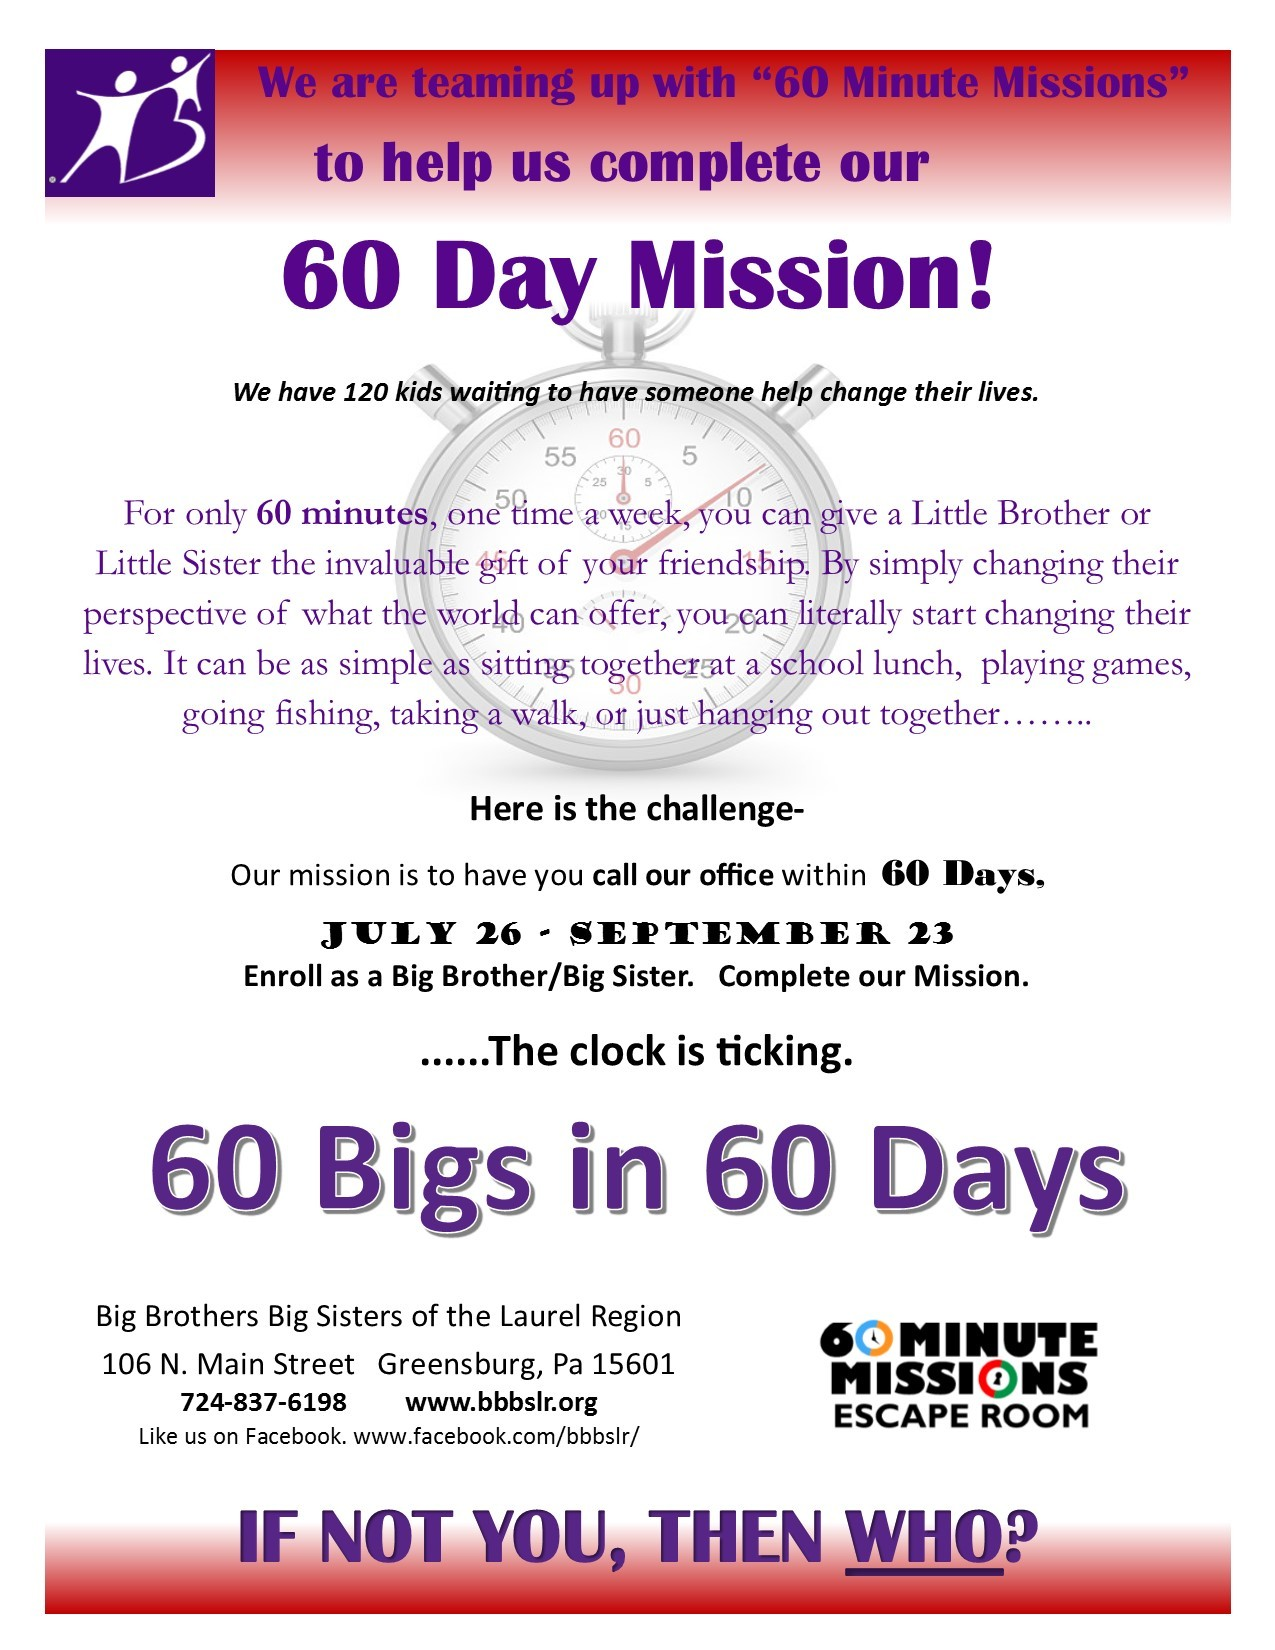 60DayMission-Enewsletter.jpg#asset:421